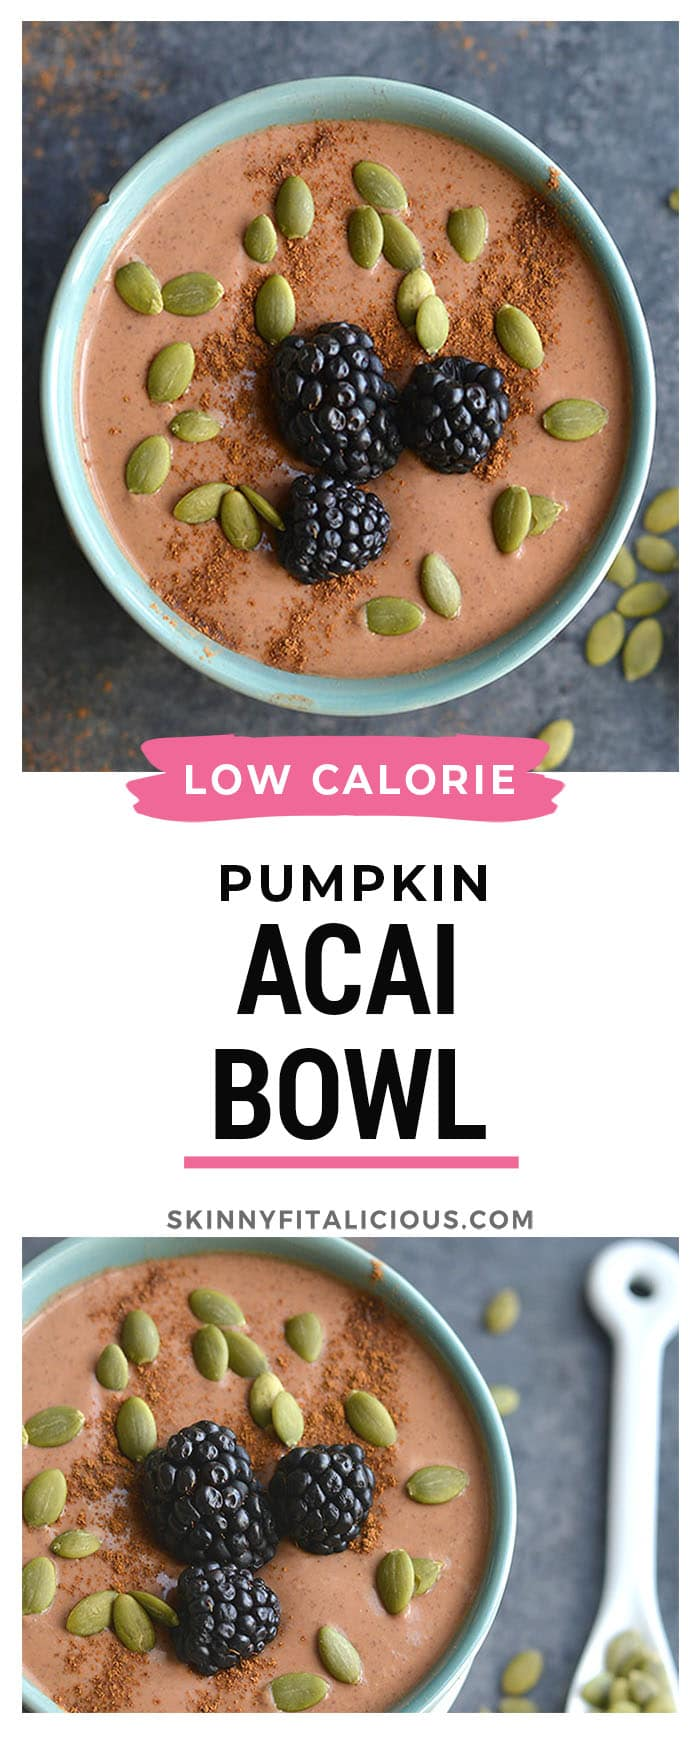 Pumpkin Acai Bowl! Get a taste of fall with a cool bowl loaded with creaminess and fall seasonings. A Gluten Free smoothie bowl that will leave you energized, nourished and full